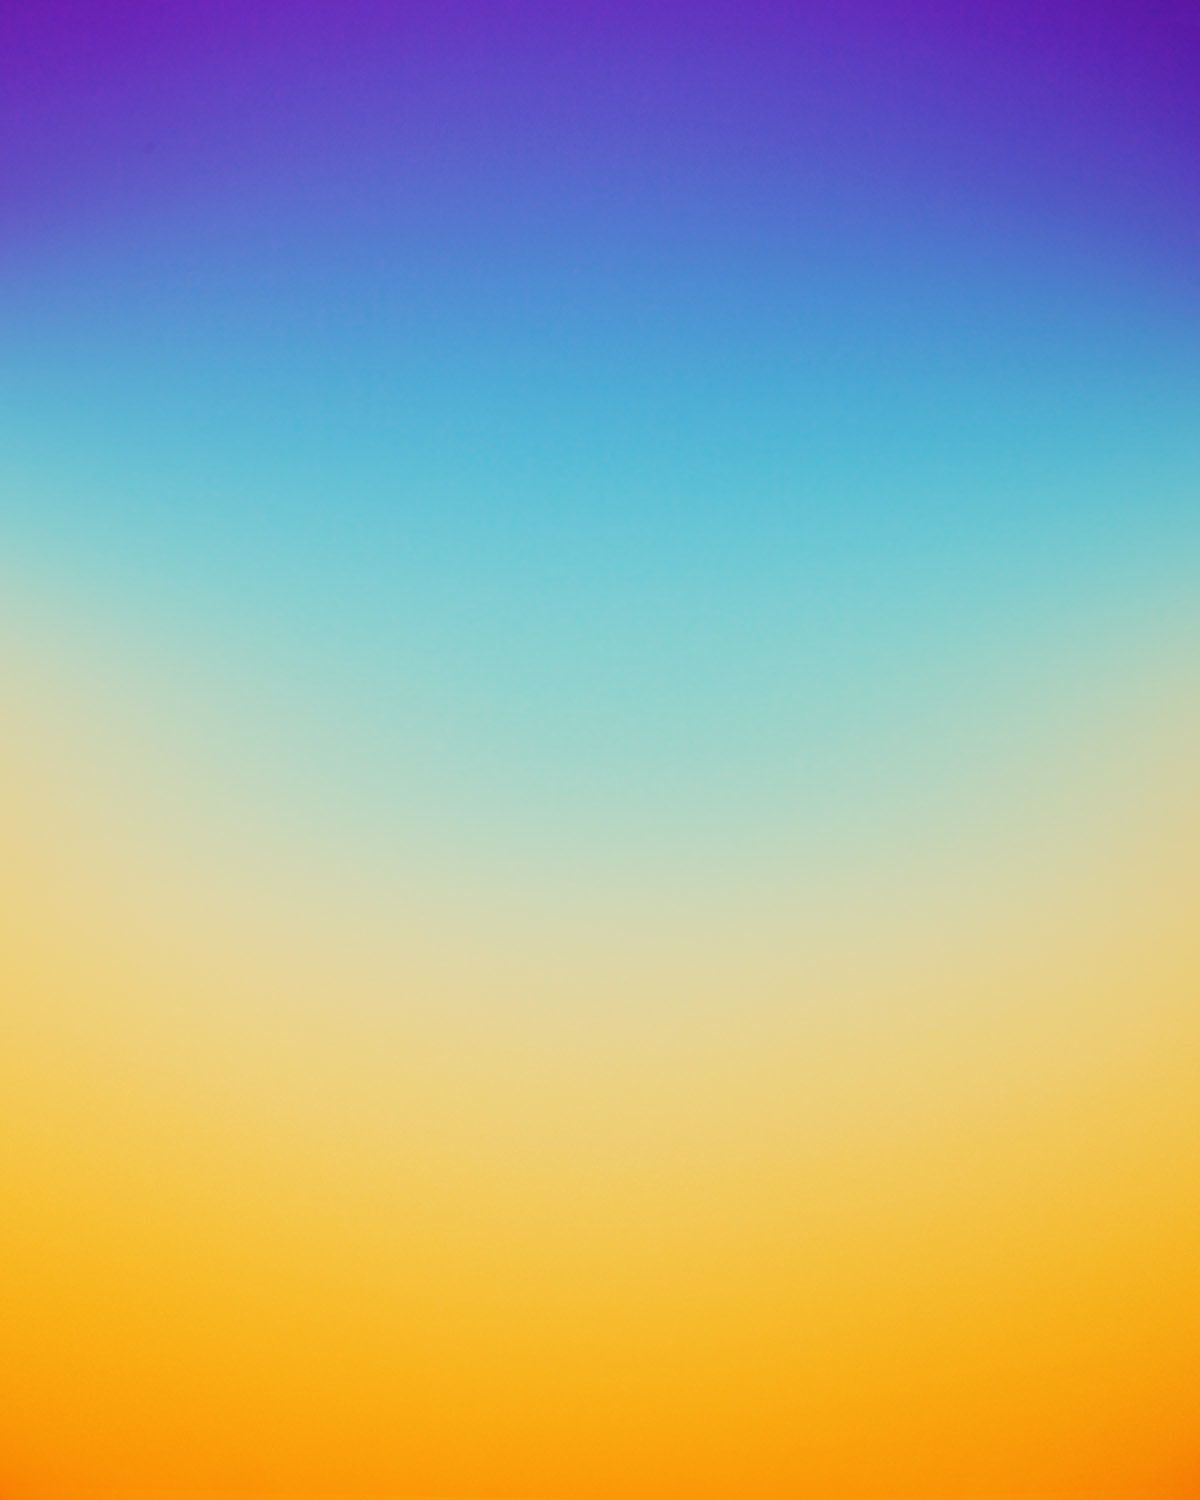 Sunset 6 34pm Z3 Jpg 1200 1500 Ombre Wallpapers Ombre Wallpaper Iphone Yellow Wallpaper